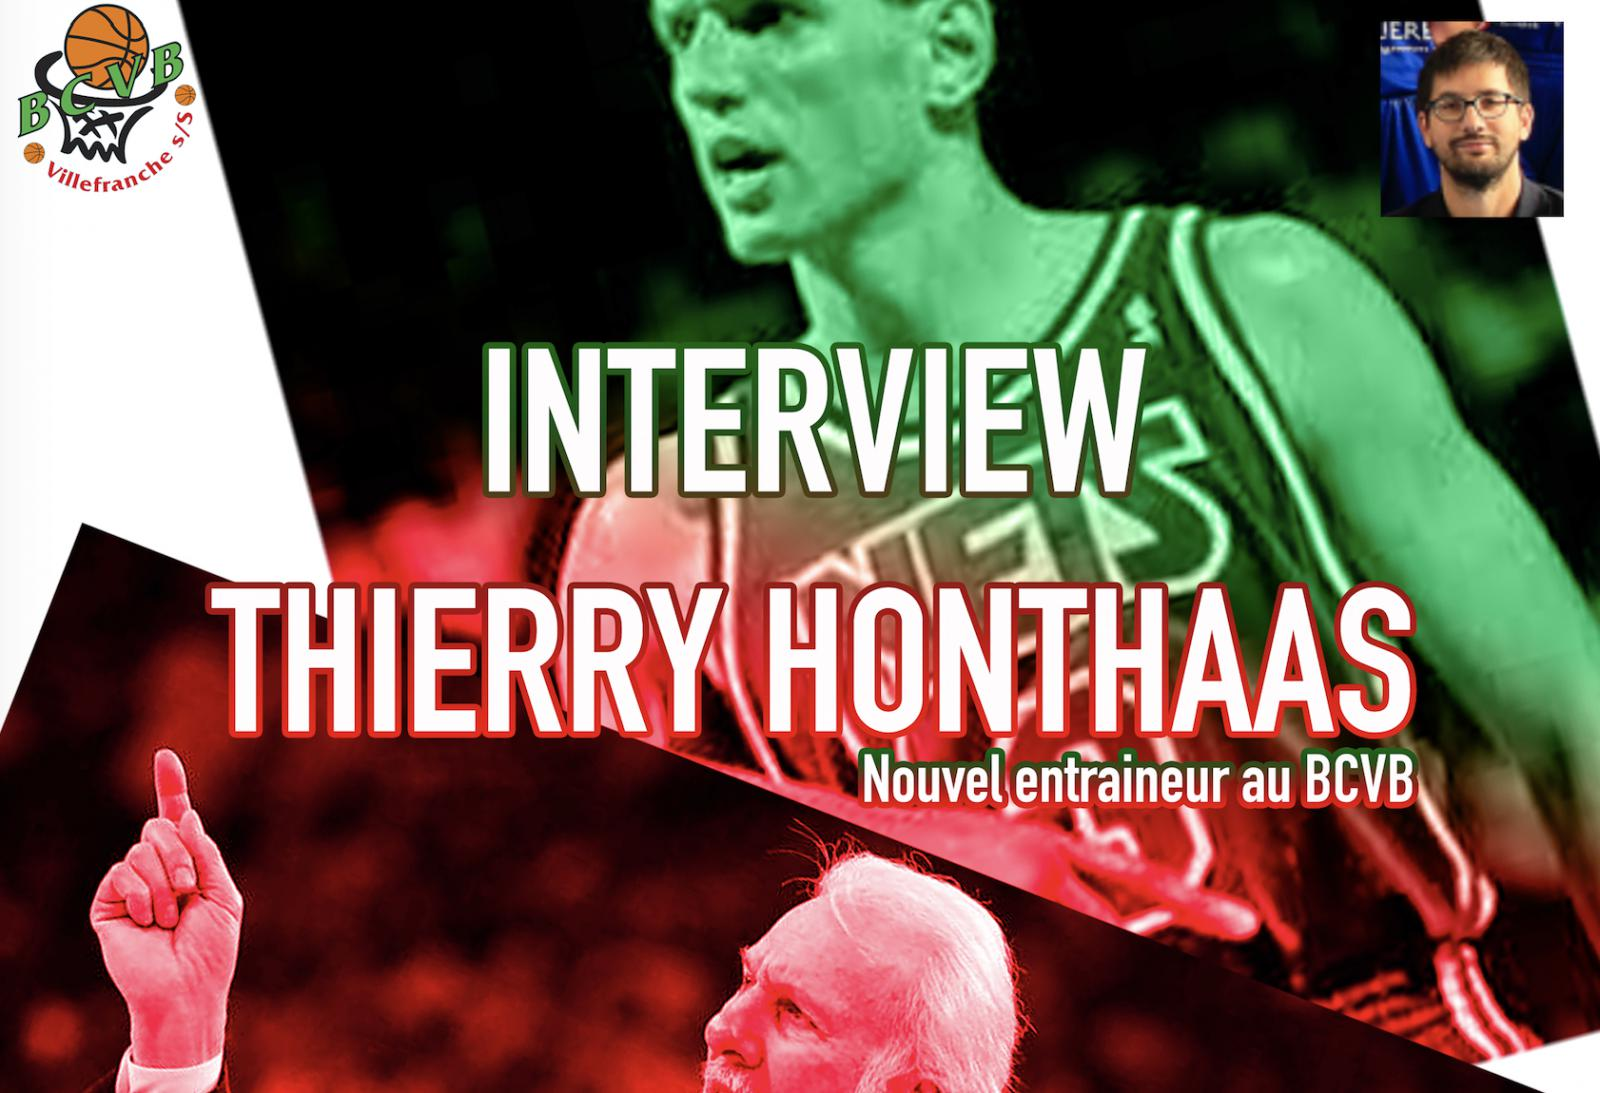 Interview // Thierry HONTHAAS